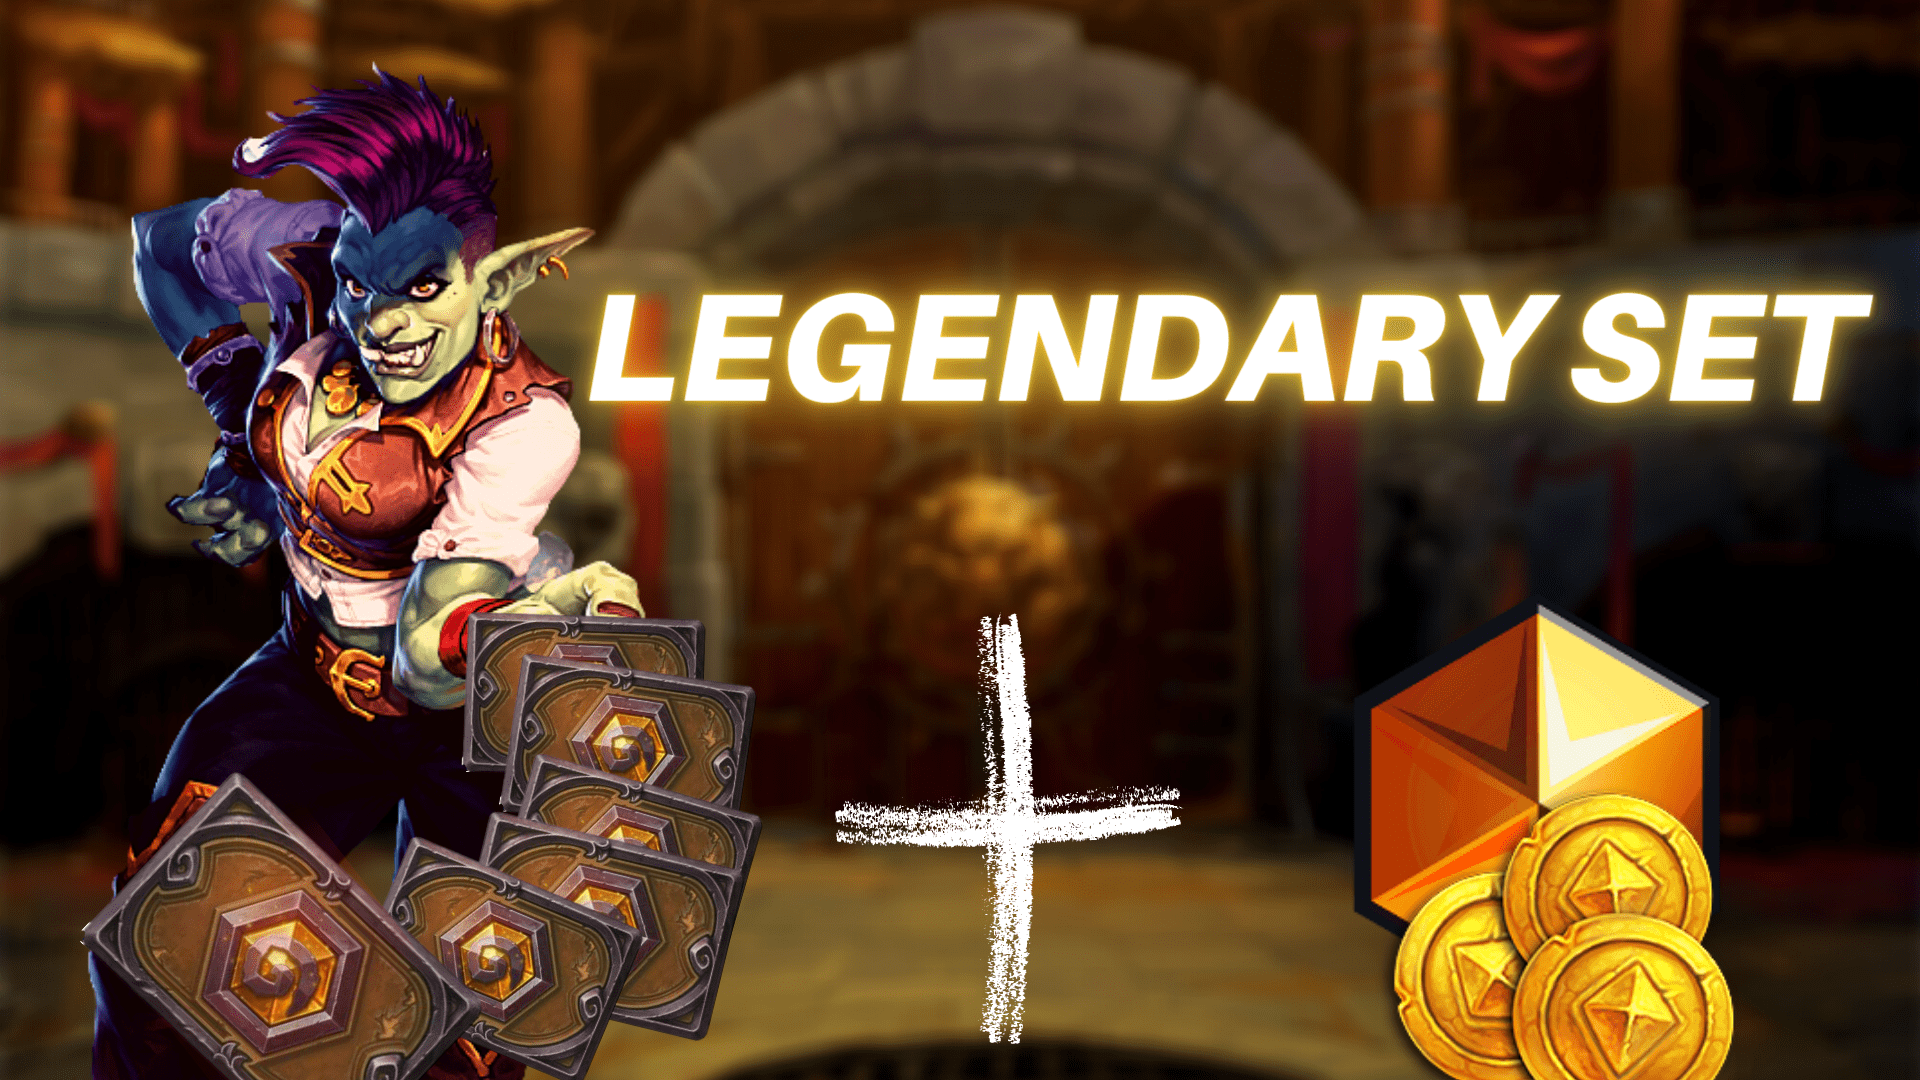 Legendary set Zafari - e2p.com